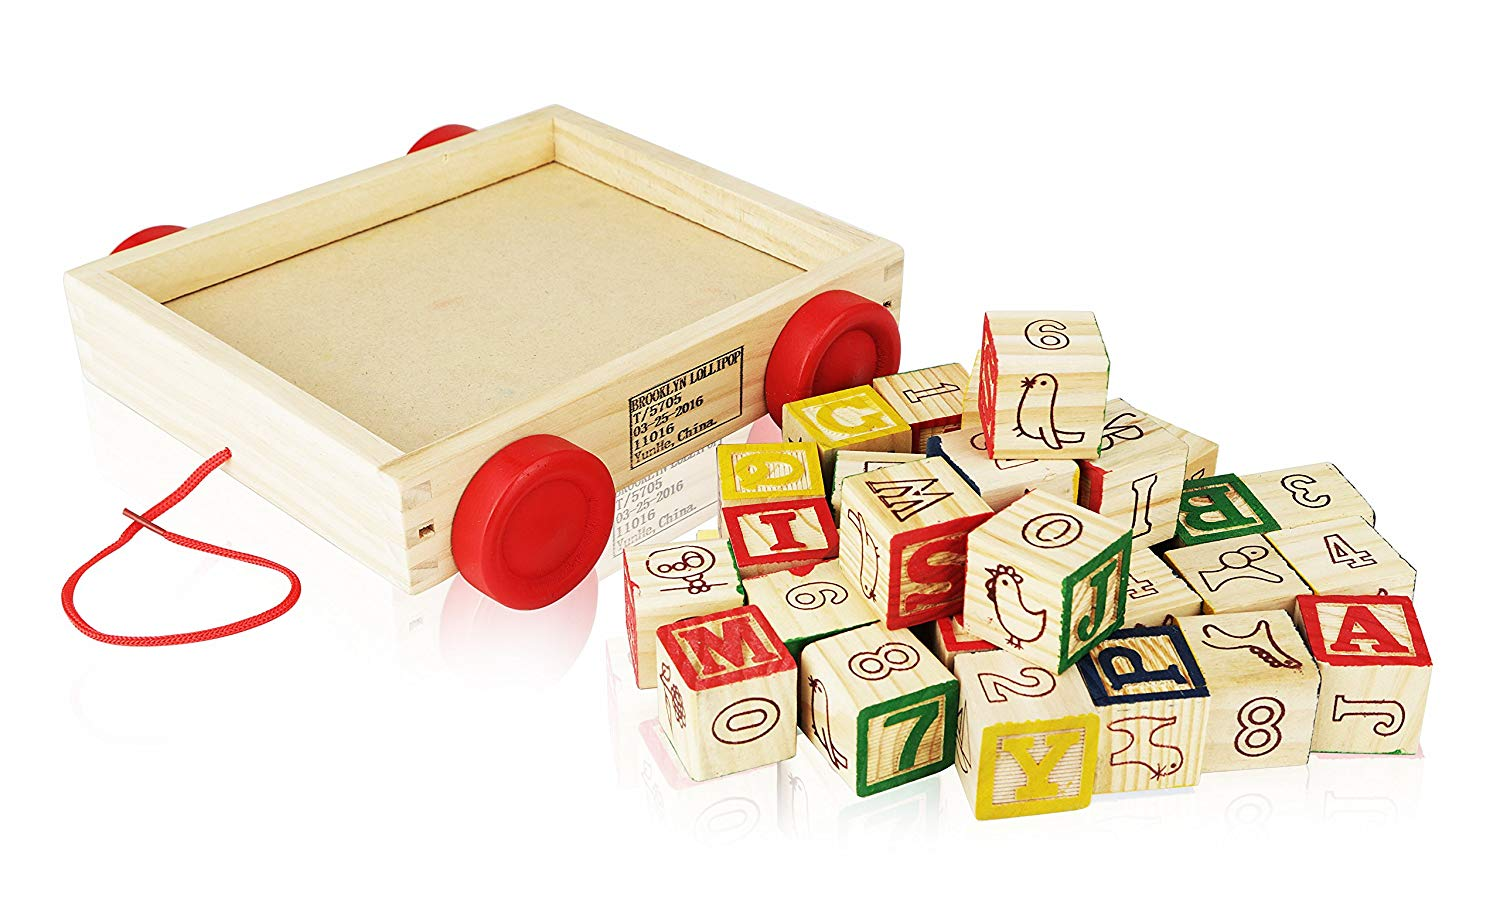 Wagon ABC Wooden Block Letters